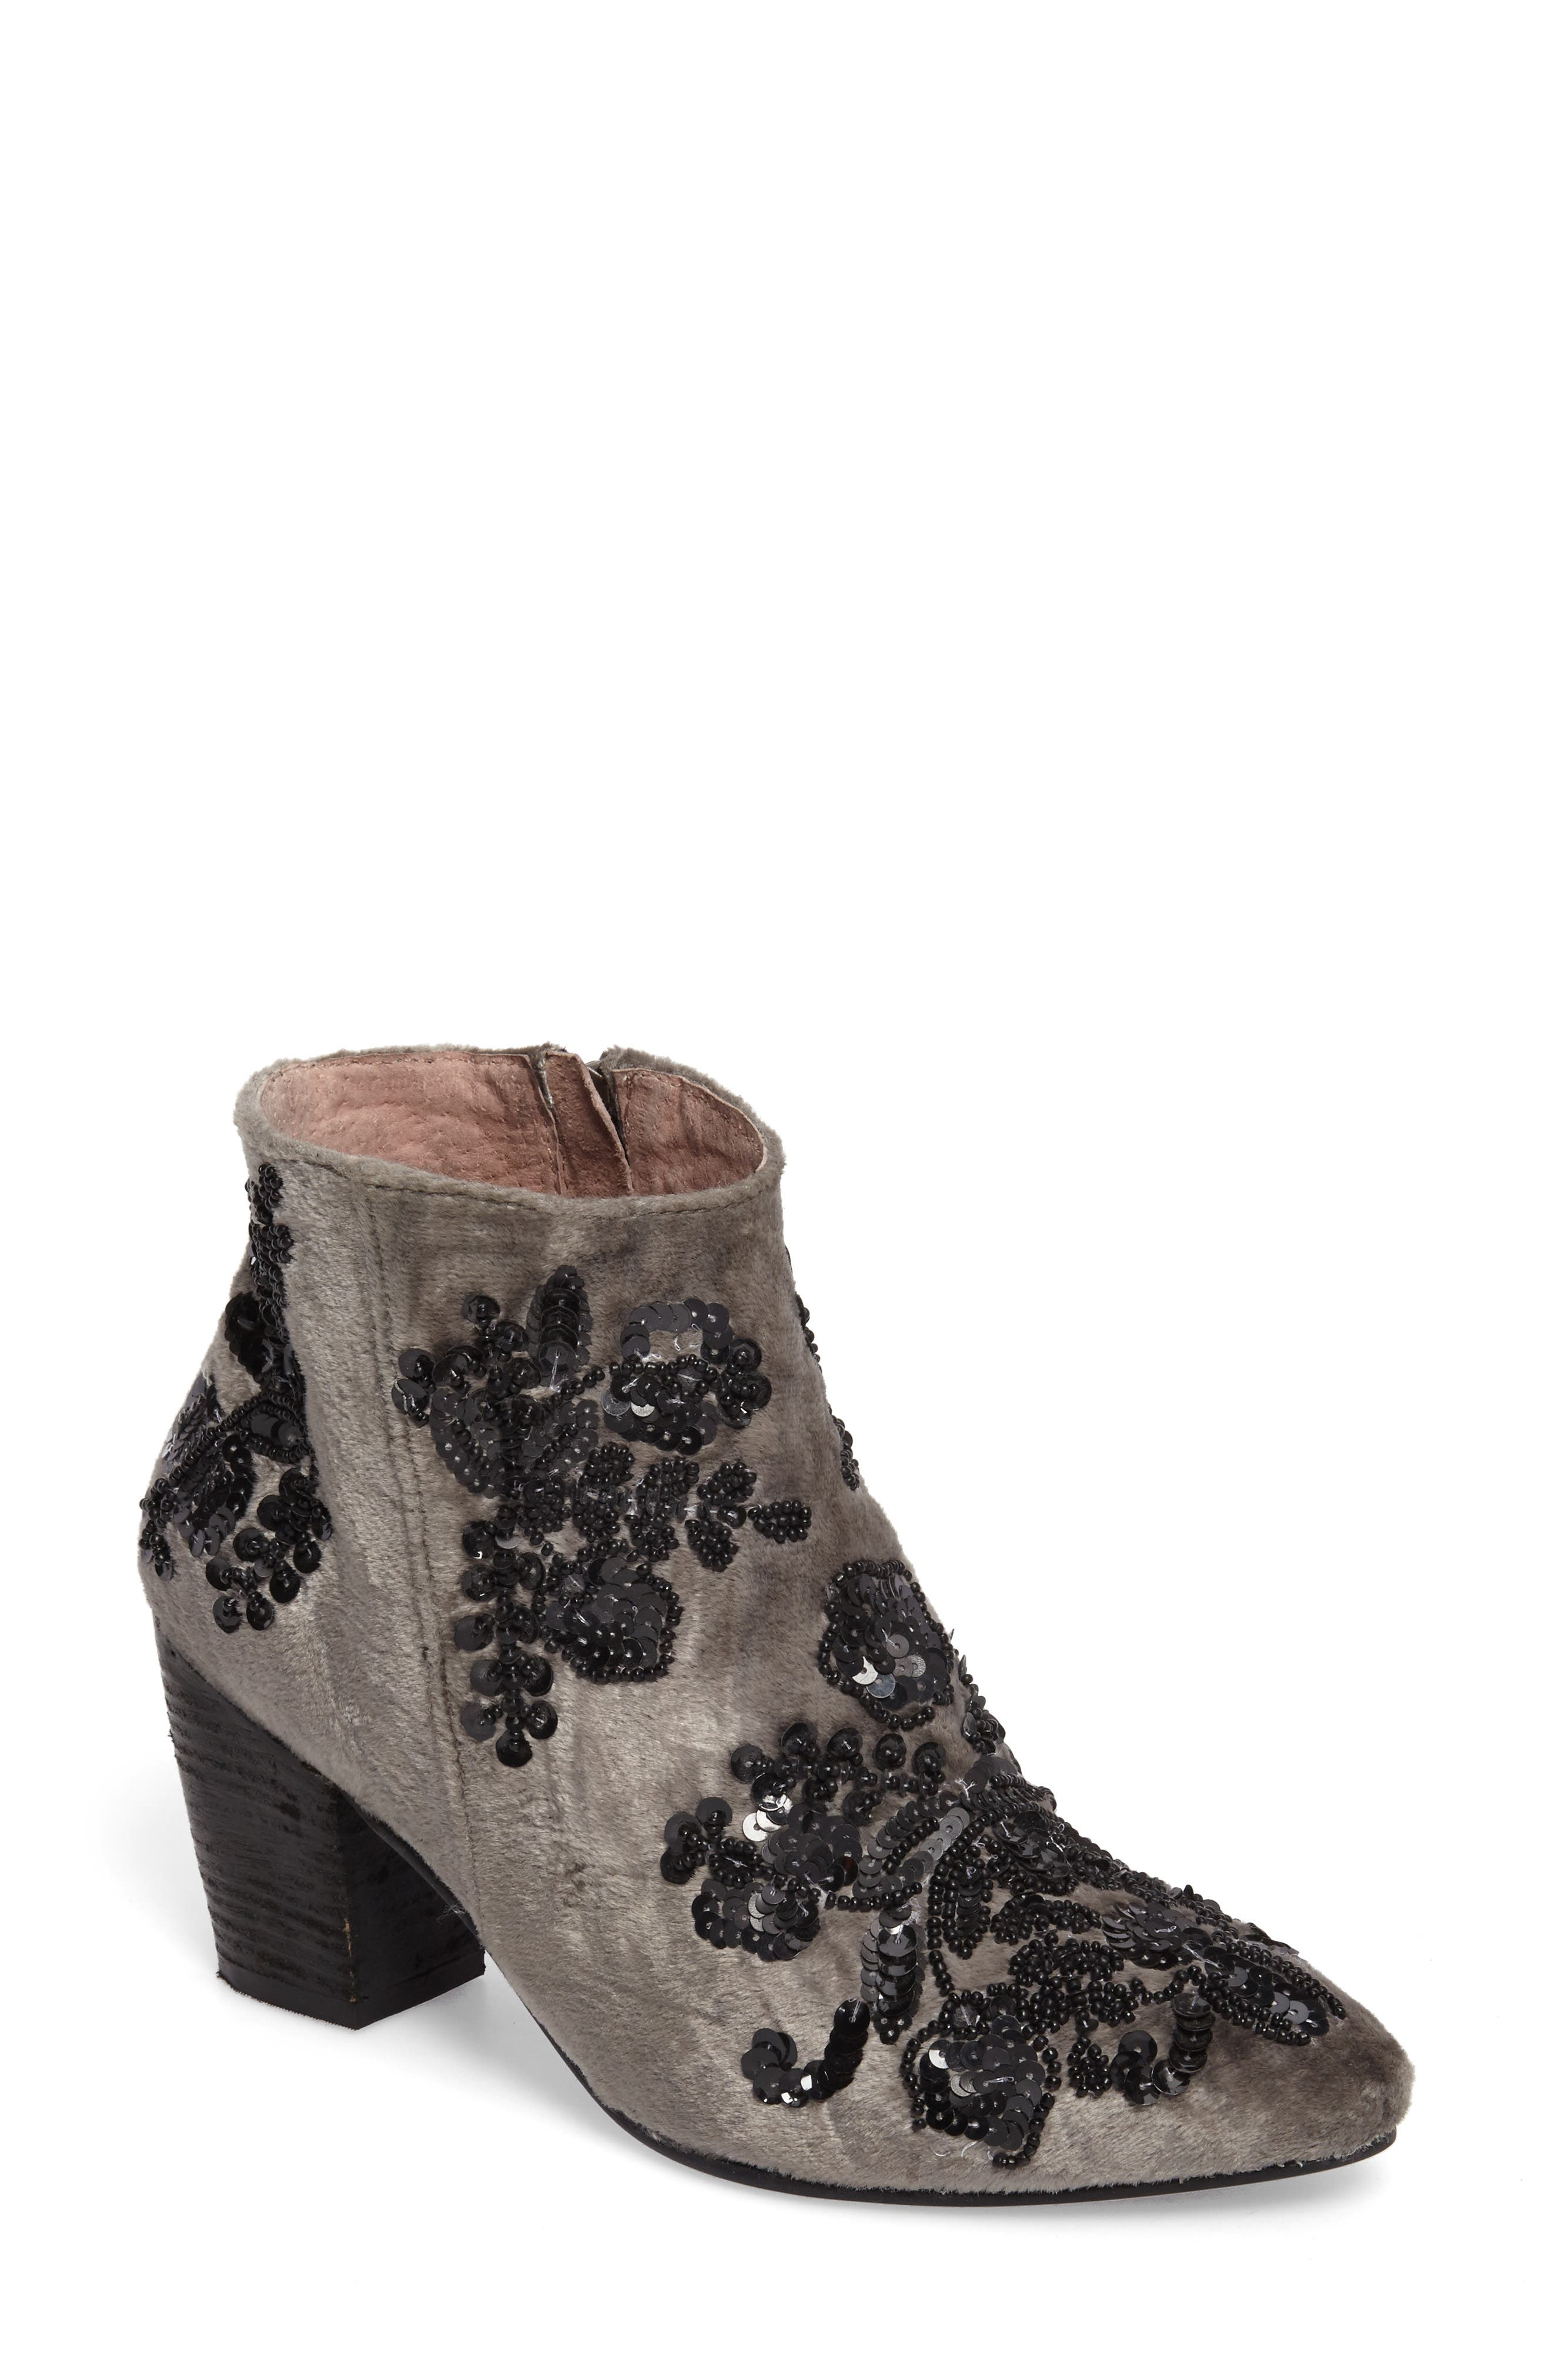 Alternate Image 1 Selected - Free People Night Out Velvet Bootie (Women)